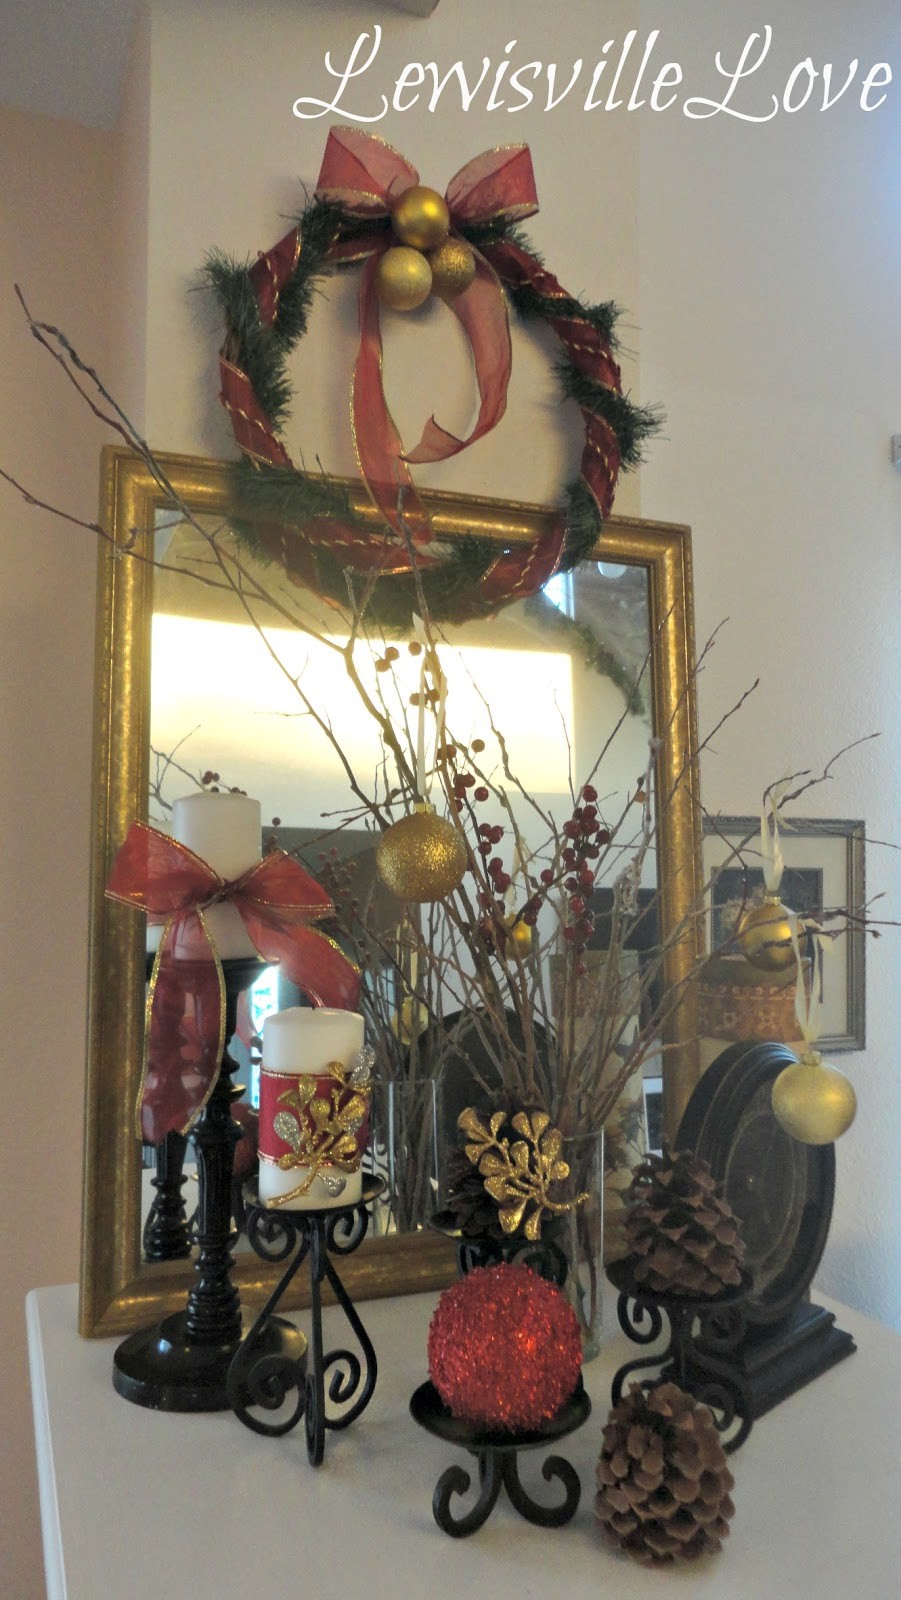 Lewisville Love: Christmas decorating